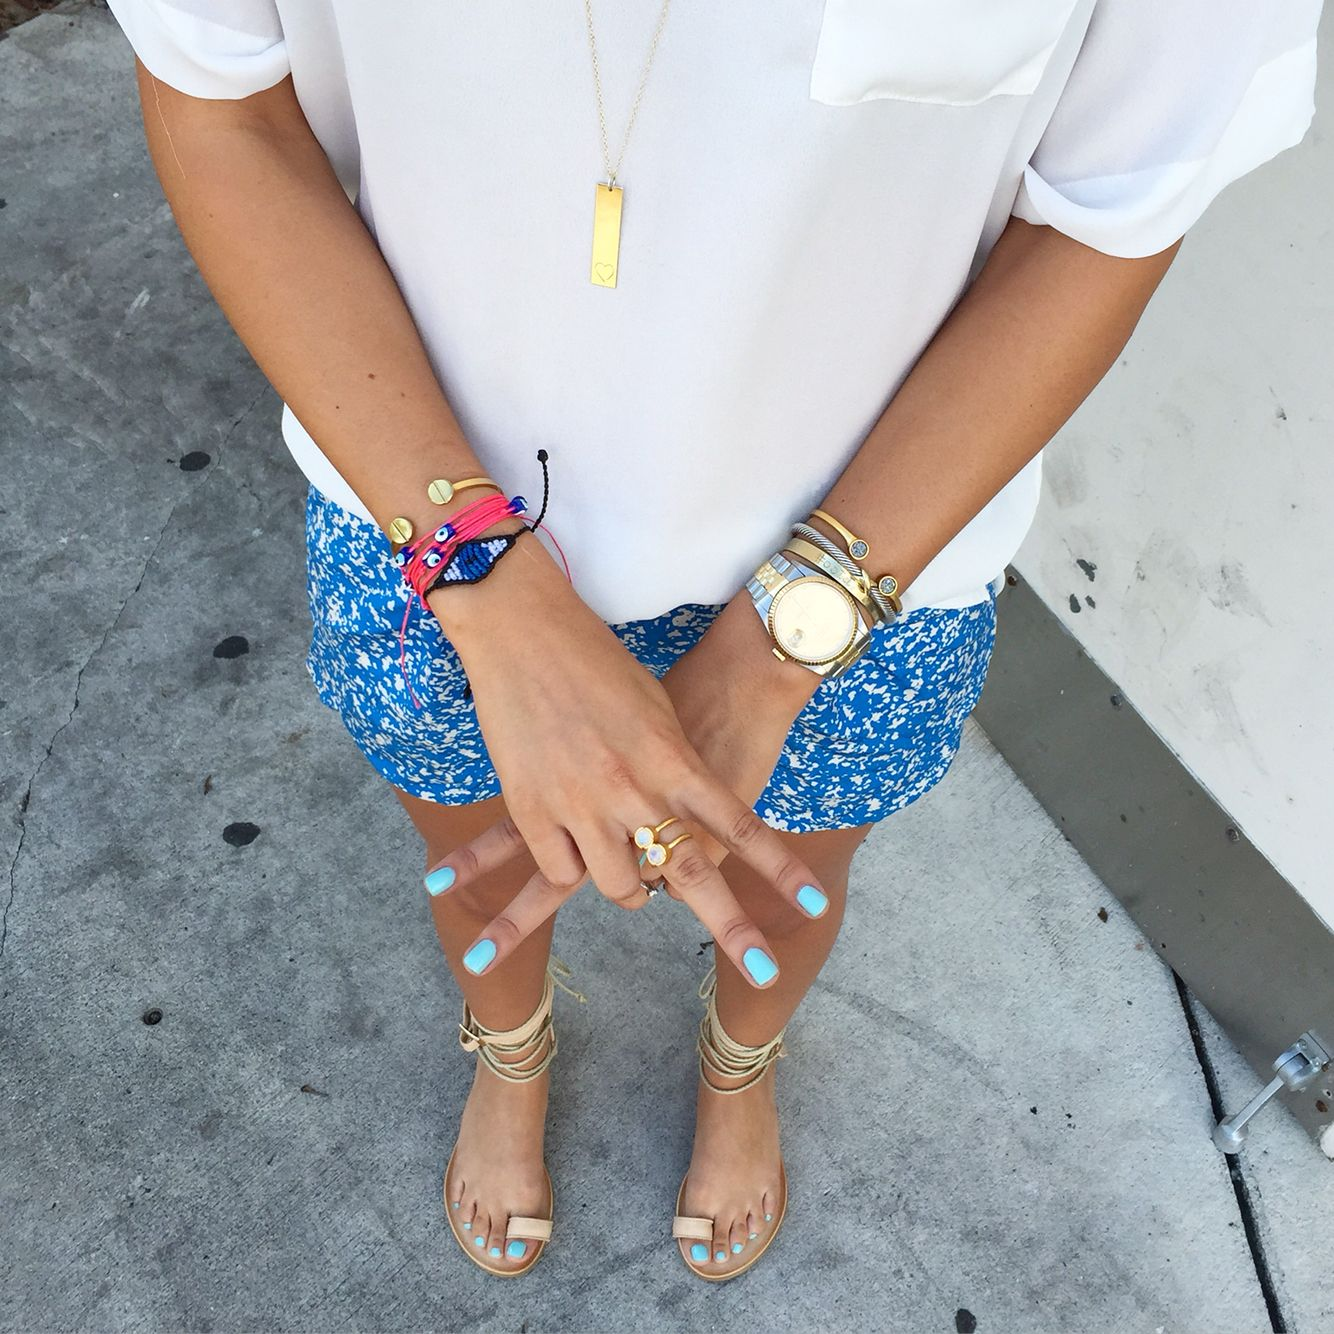 Arm party, gladiator sandals, Rolex, gold jewelry, stack, cool ...